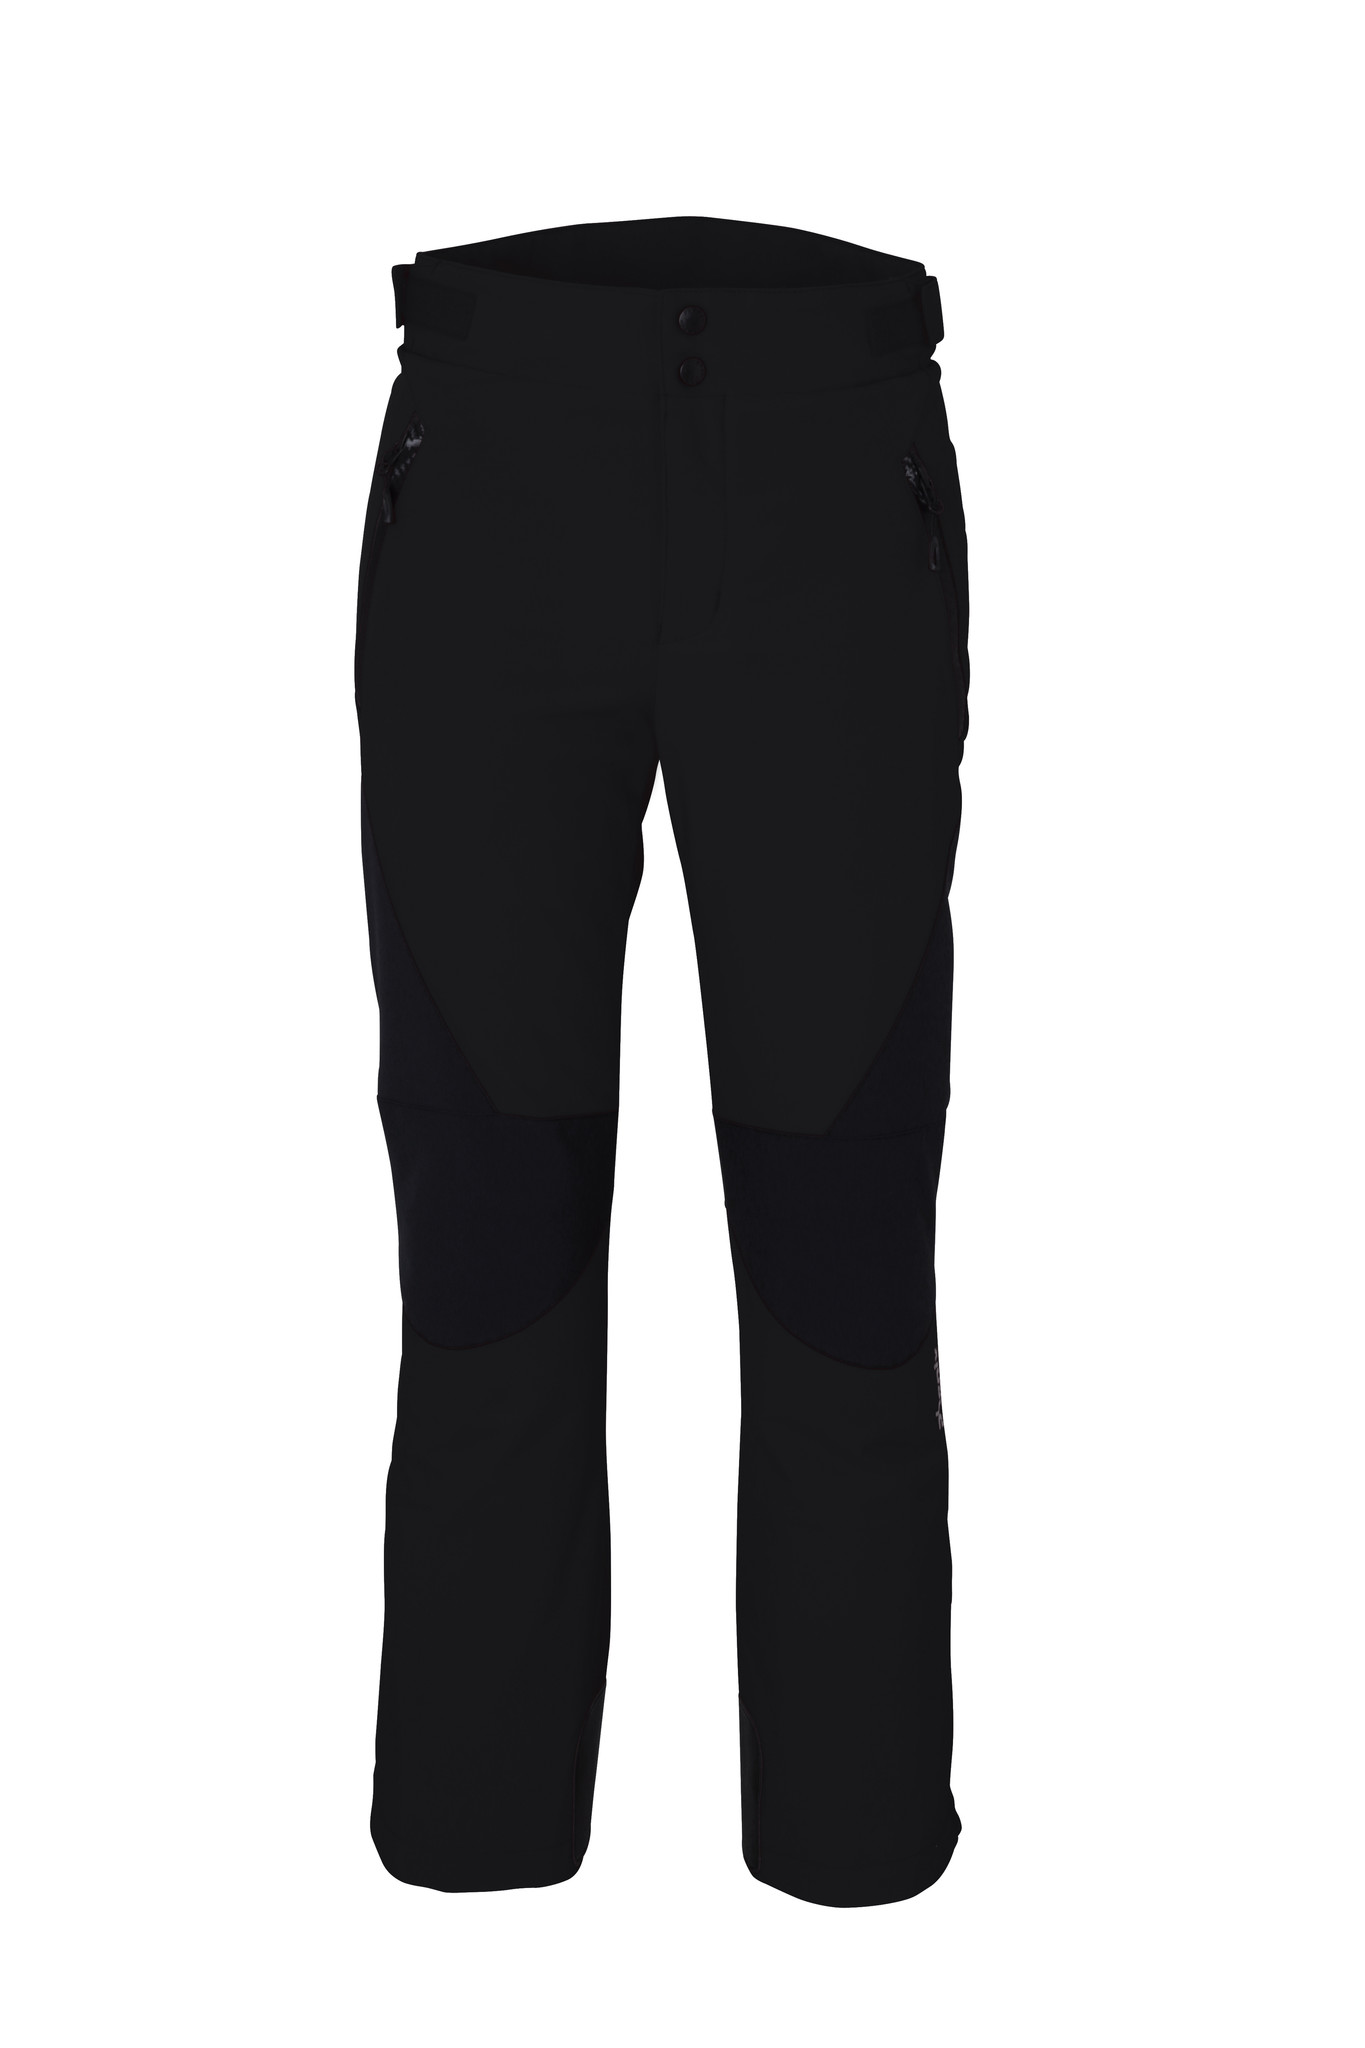 PHENIX  Supra Jr. Pants